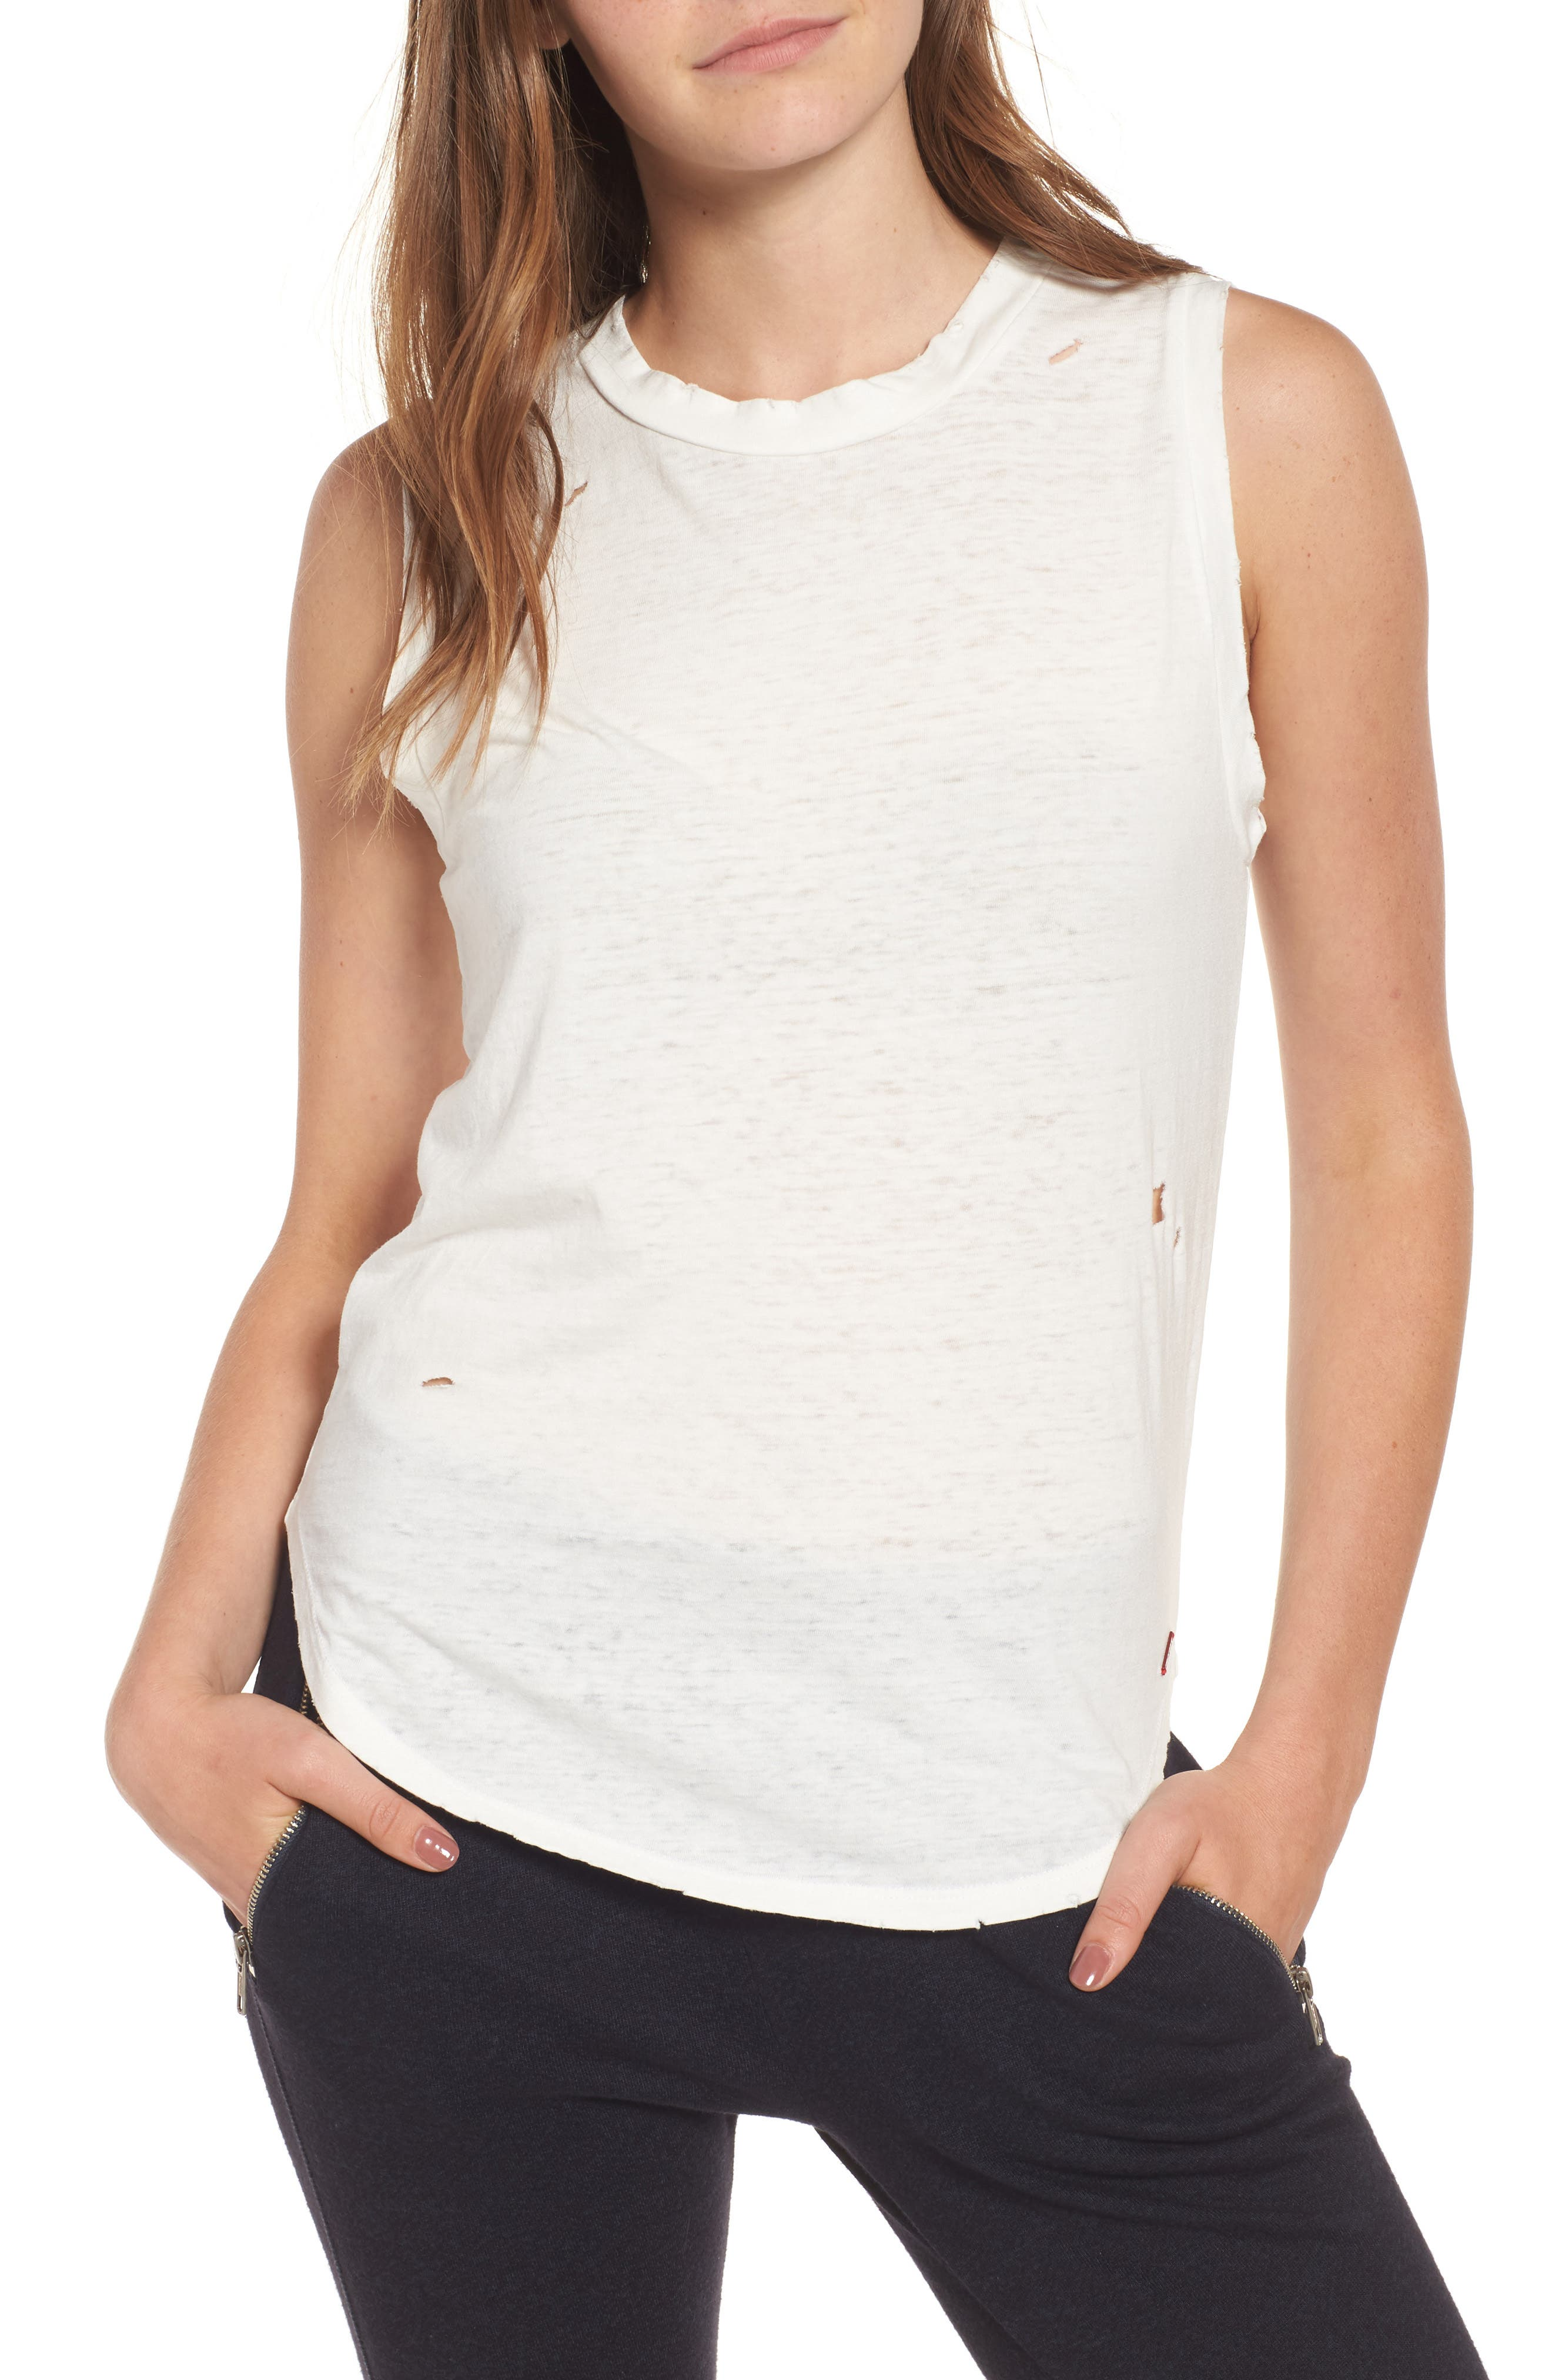 Corin Deconstructed Muscle Tank,                         Main,                         color, White